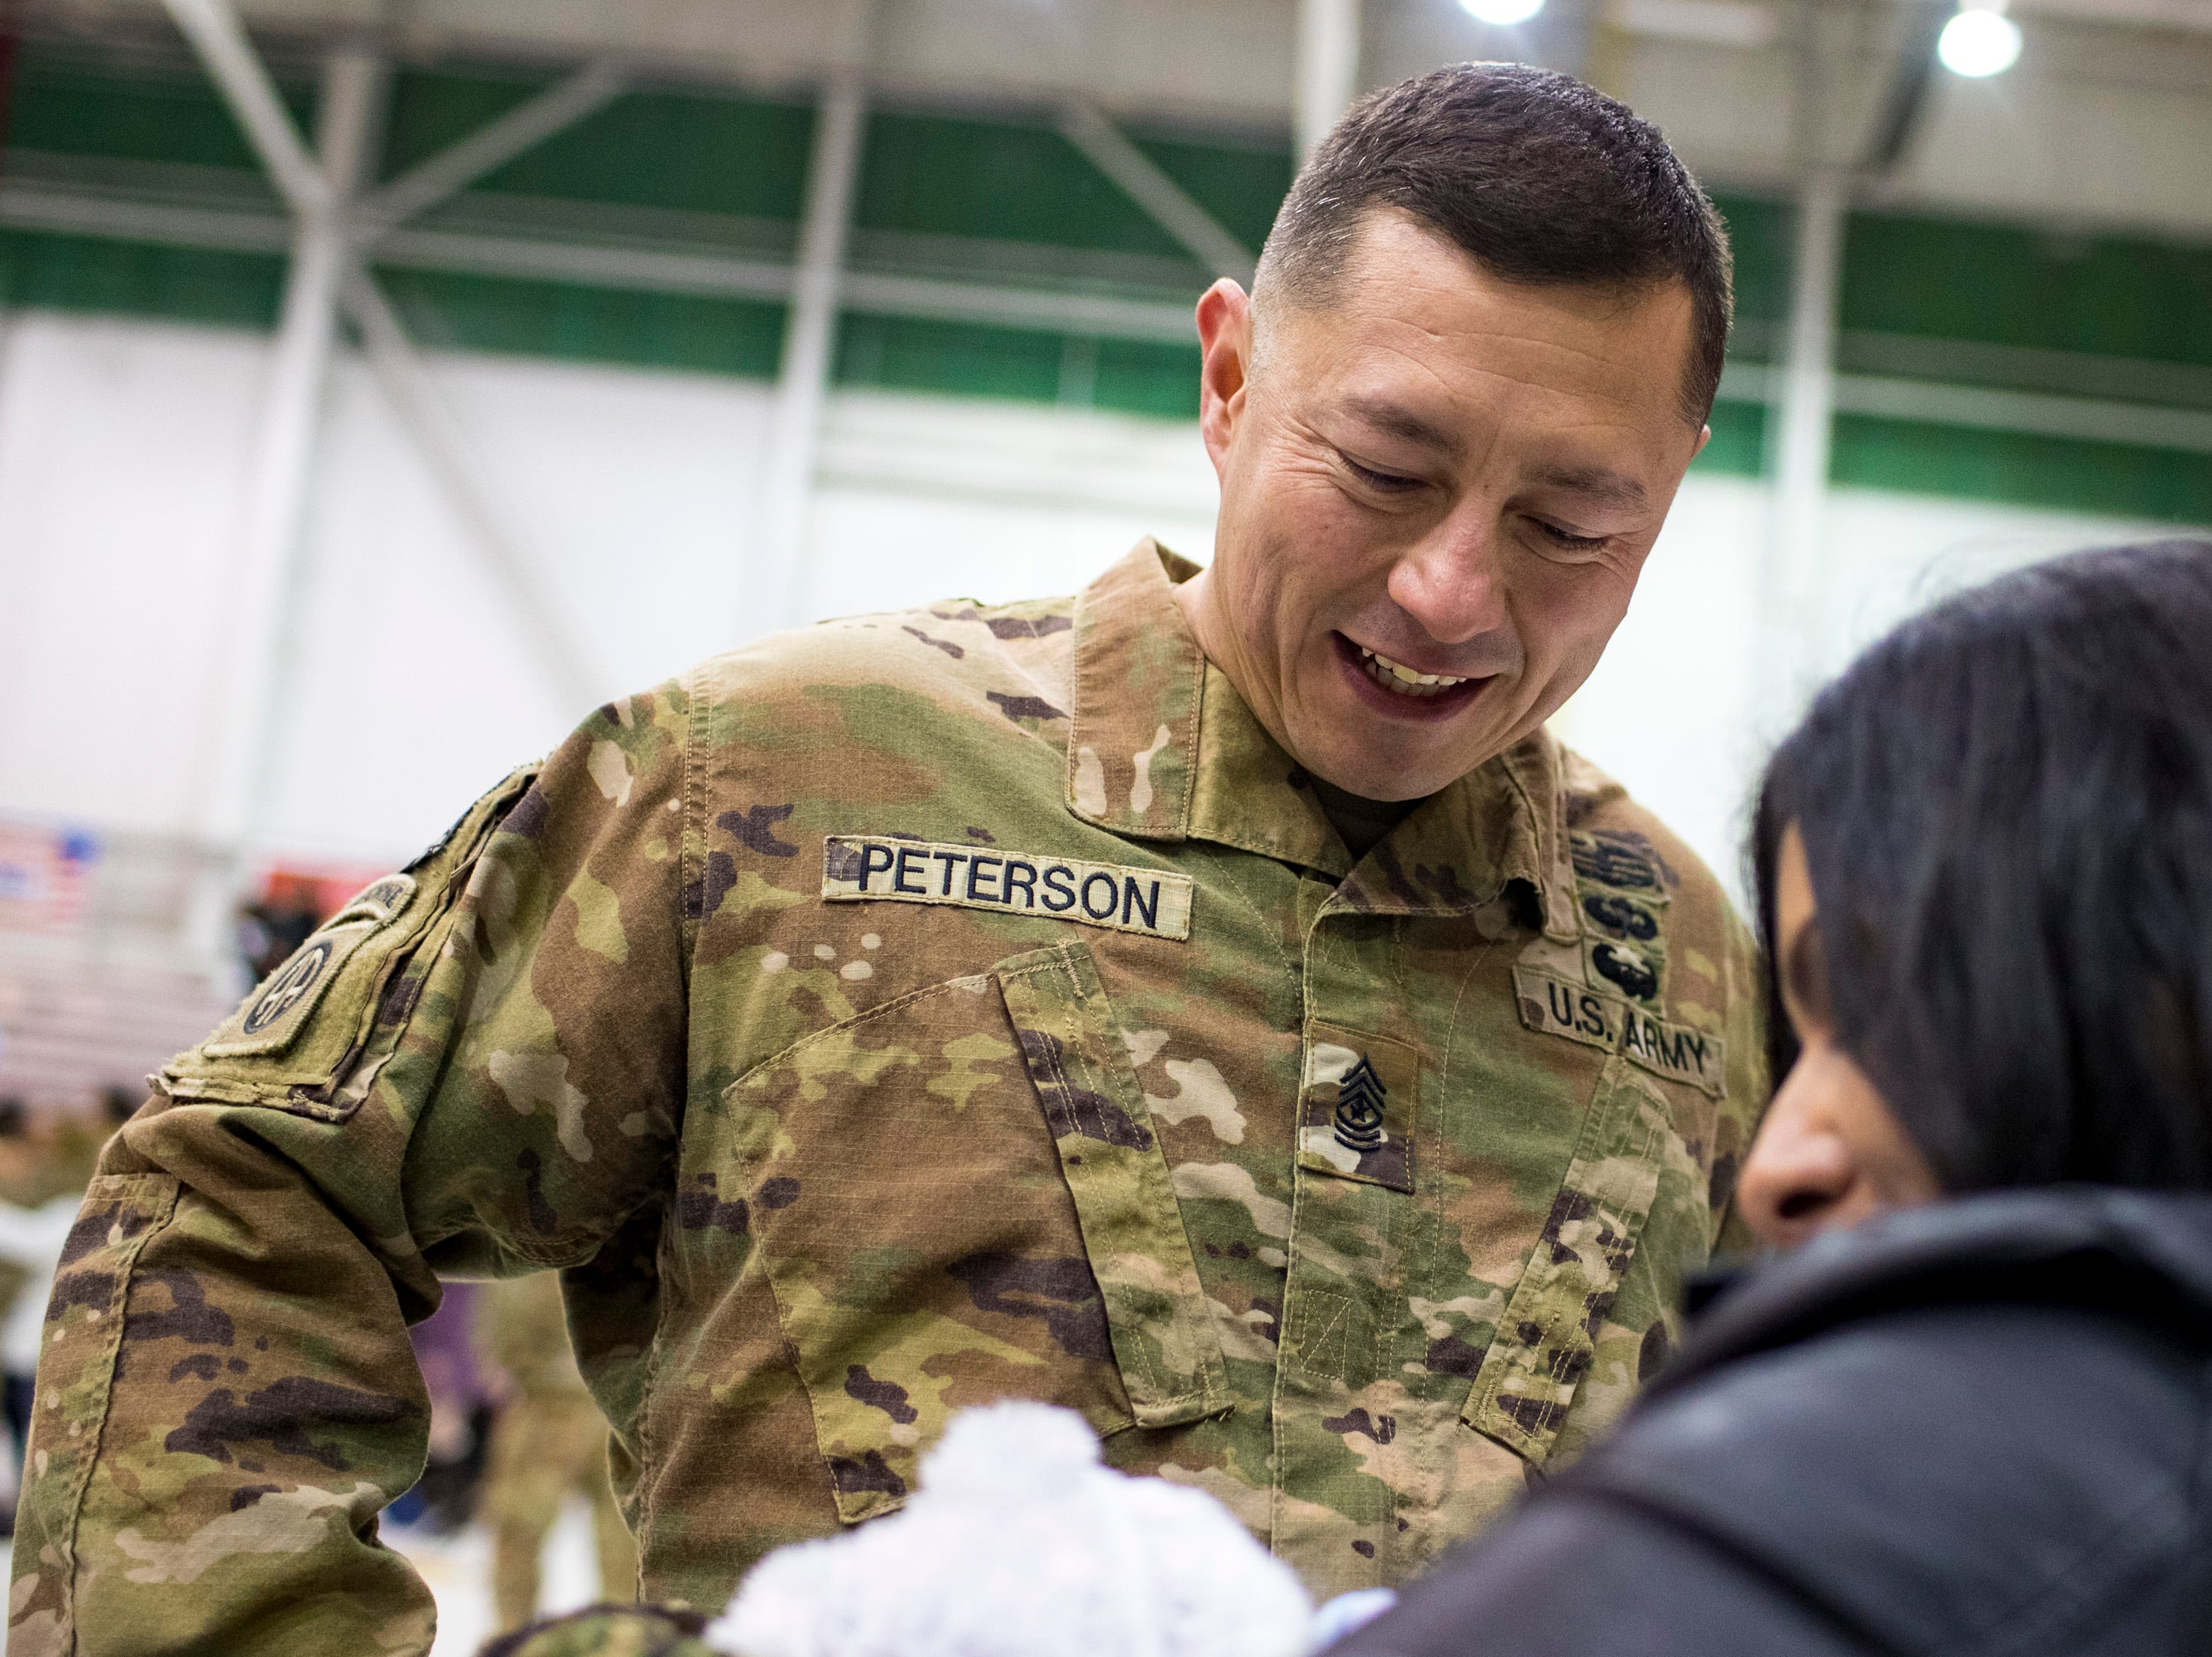 Sgt. Major Kevin Peterson sees his newborn son, Logan Grey Peterson, 1 week, for the first time, during the welcome home ceremony for the 2nd Battalion, 44th Air Defense Artillery Regiment and 101st Airborne Division at Fort Campbell in the early hours of Monday, Nov. 19, 2018. The soldiers were returning from a 9-month deployment in Afghanistan.